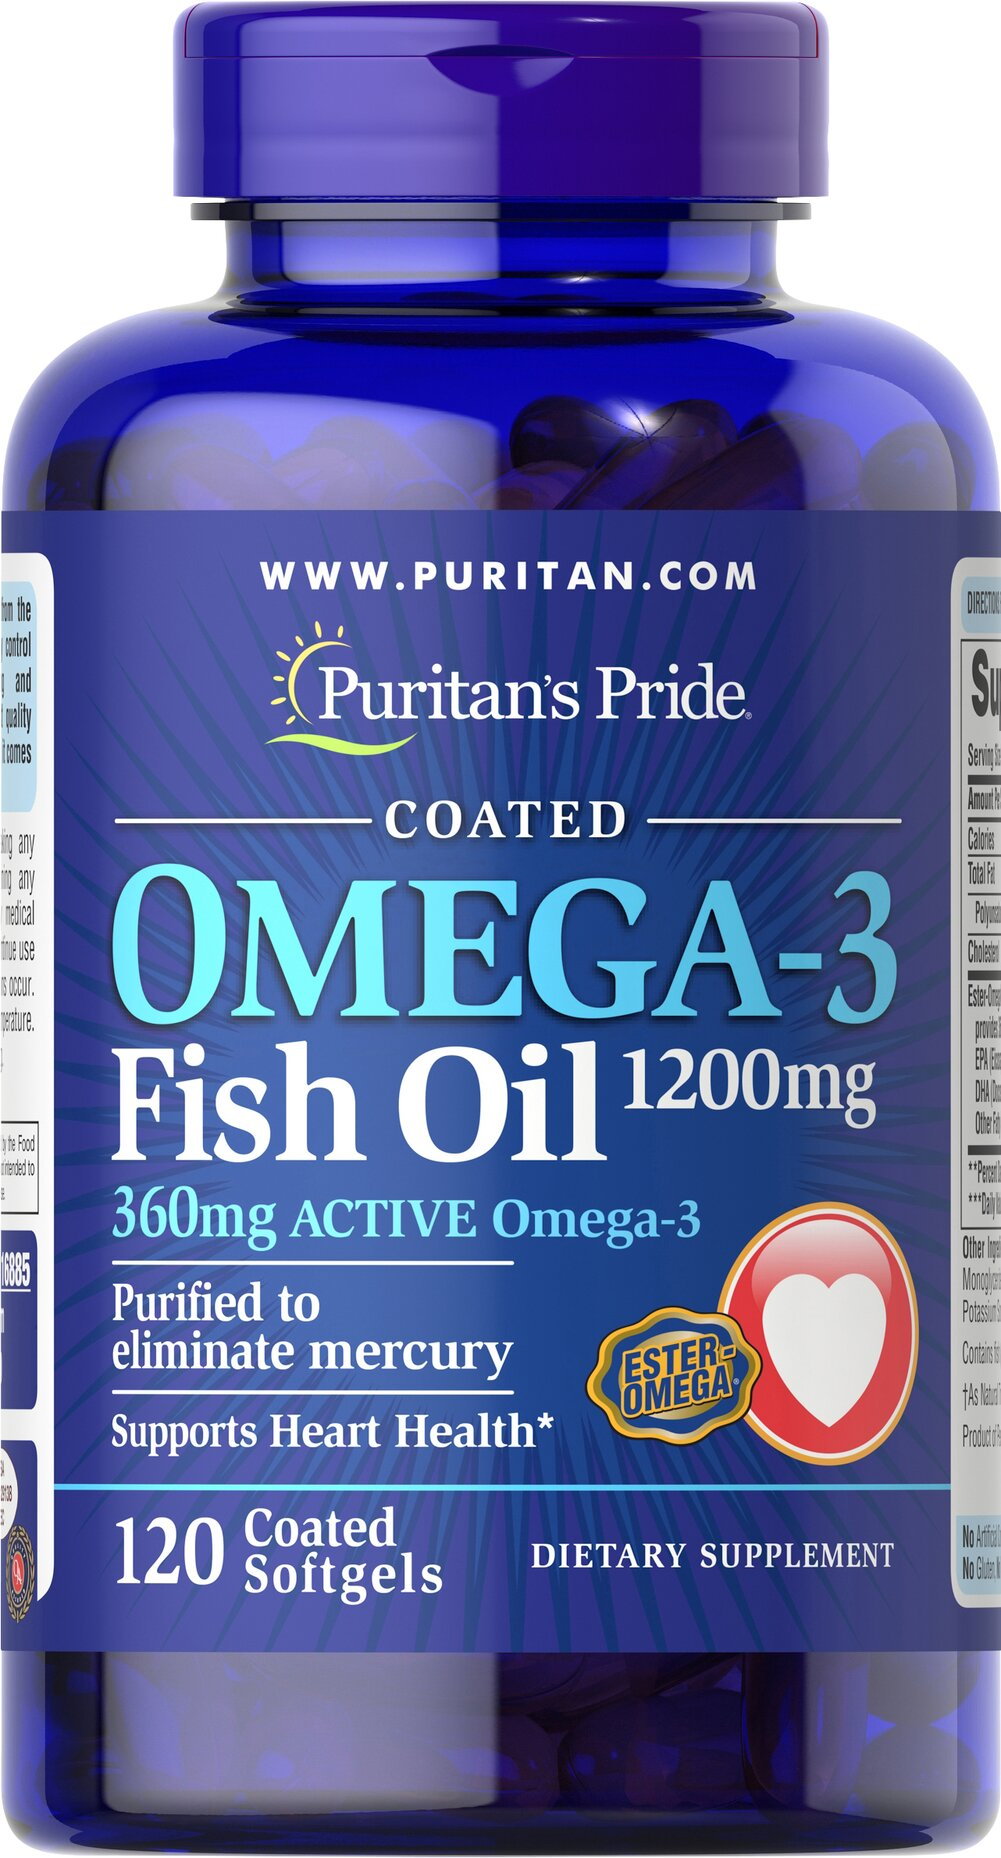 Omega-3 Fish Oil Coated 1200 mg (360 mg Active Omega-3)